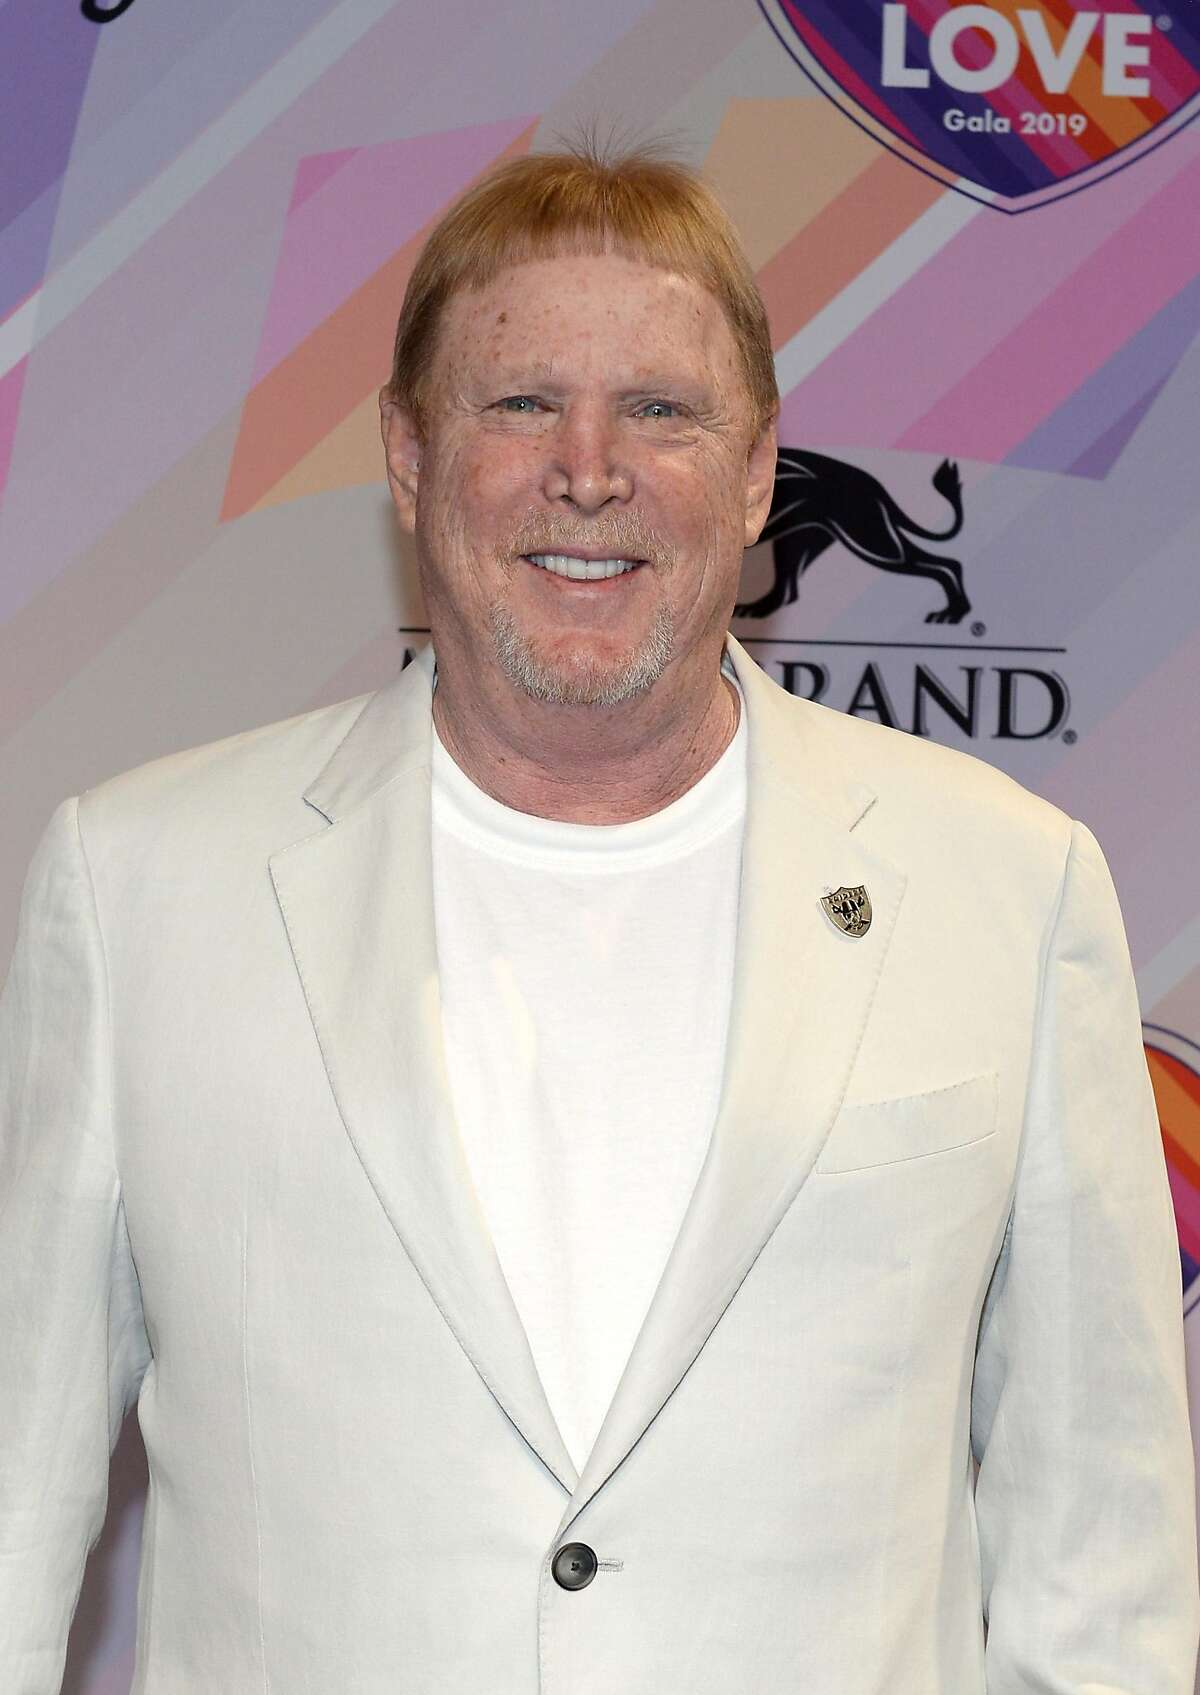 LAS VEGAS, NEVADA - MARCH 16: Mark Davis attends the 23rd annual Keep Memory Alive 'Power of Love Gala' benefit for the Cleveland Clinic Lou Ruvo Center for Brain Health at MGM Grand Garden Arena on March 16, 2019 in Las Vegas, Nevada. (Photo by Bryan Steffy/Getty Images for Keep Memory Alive)